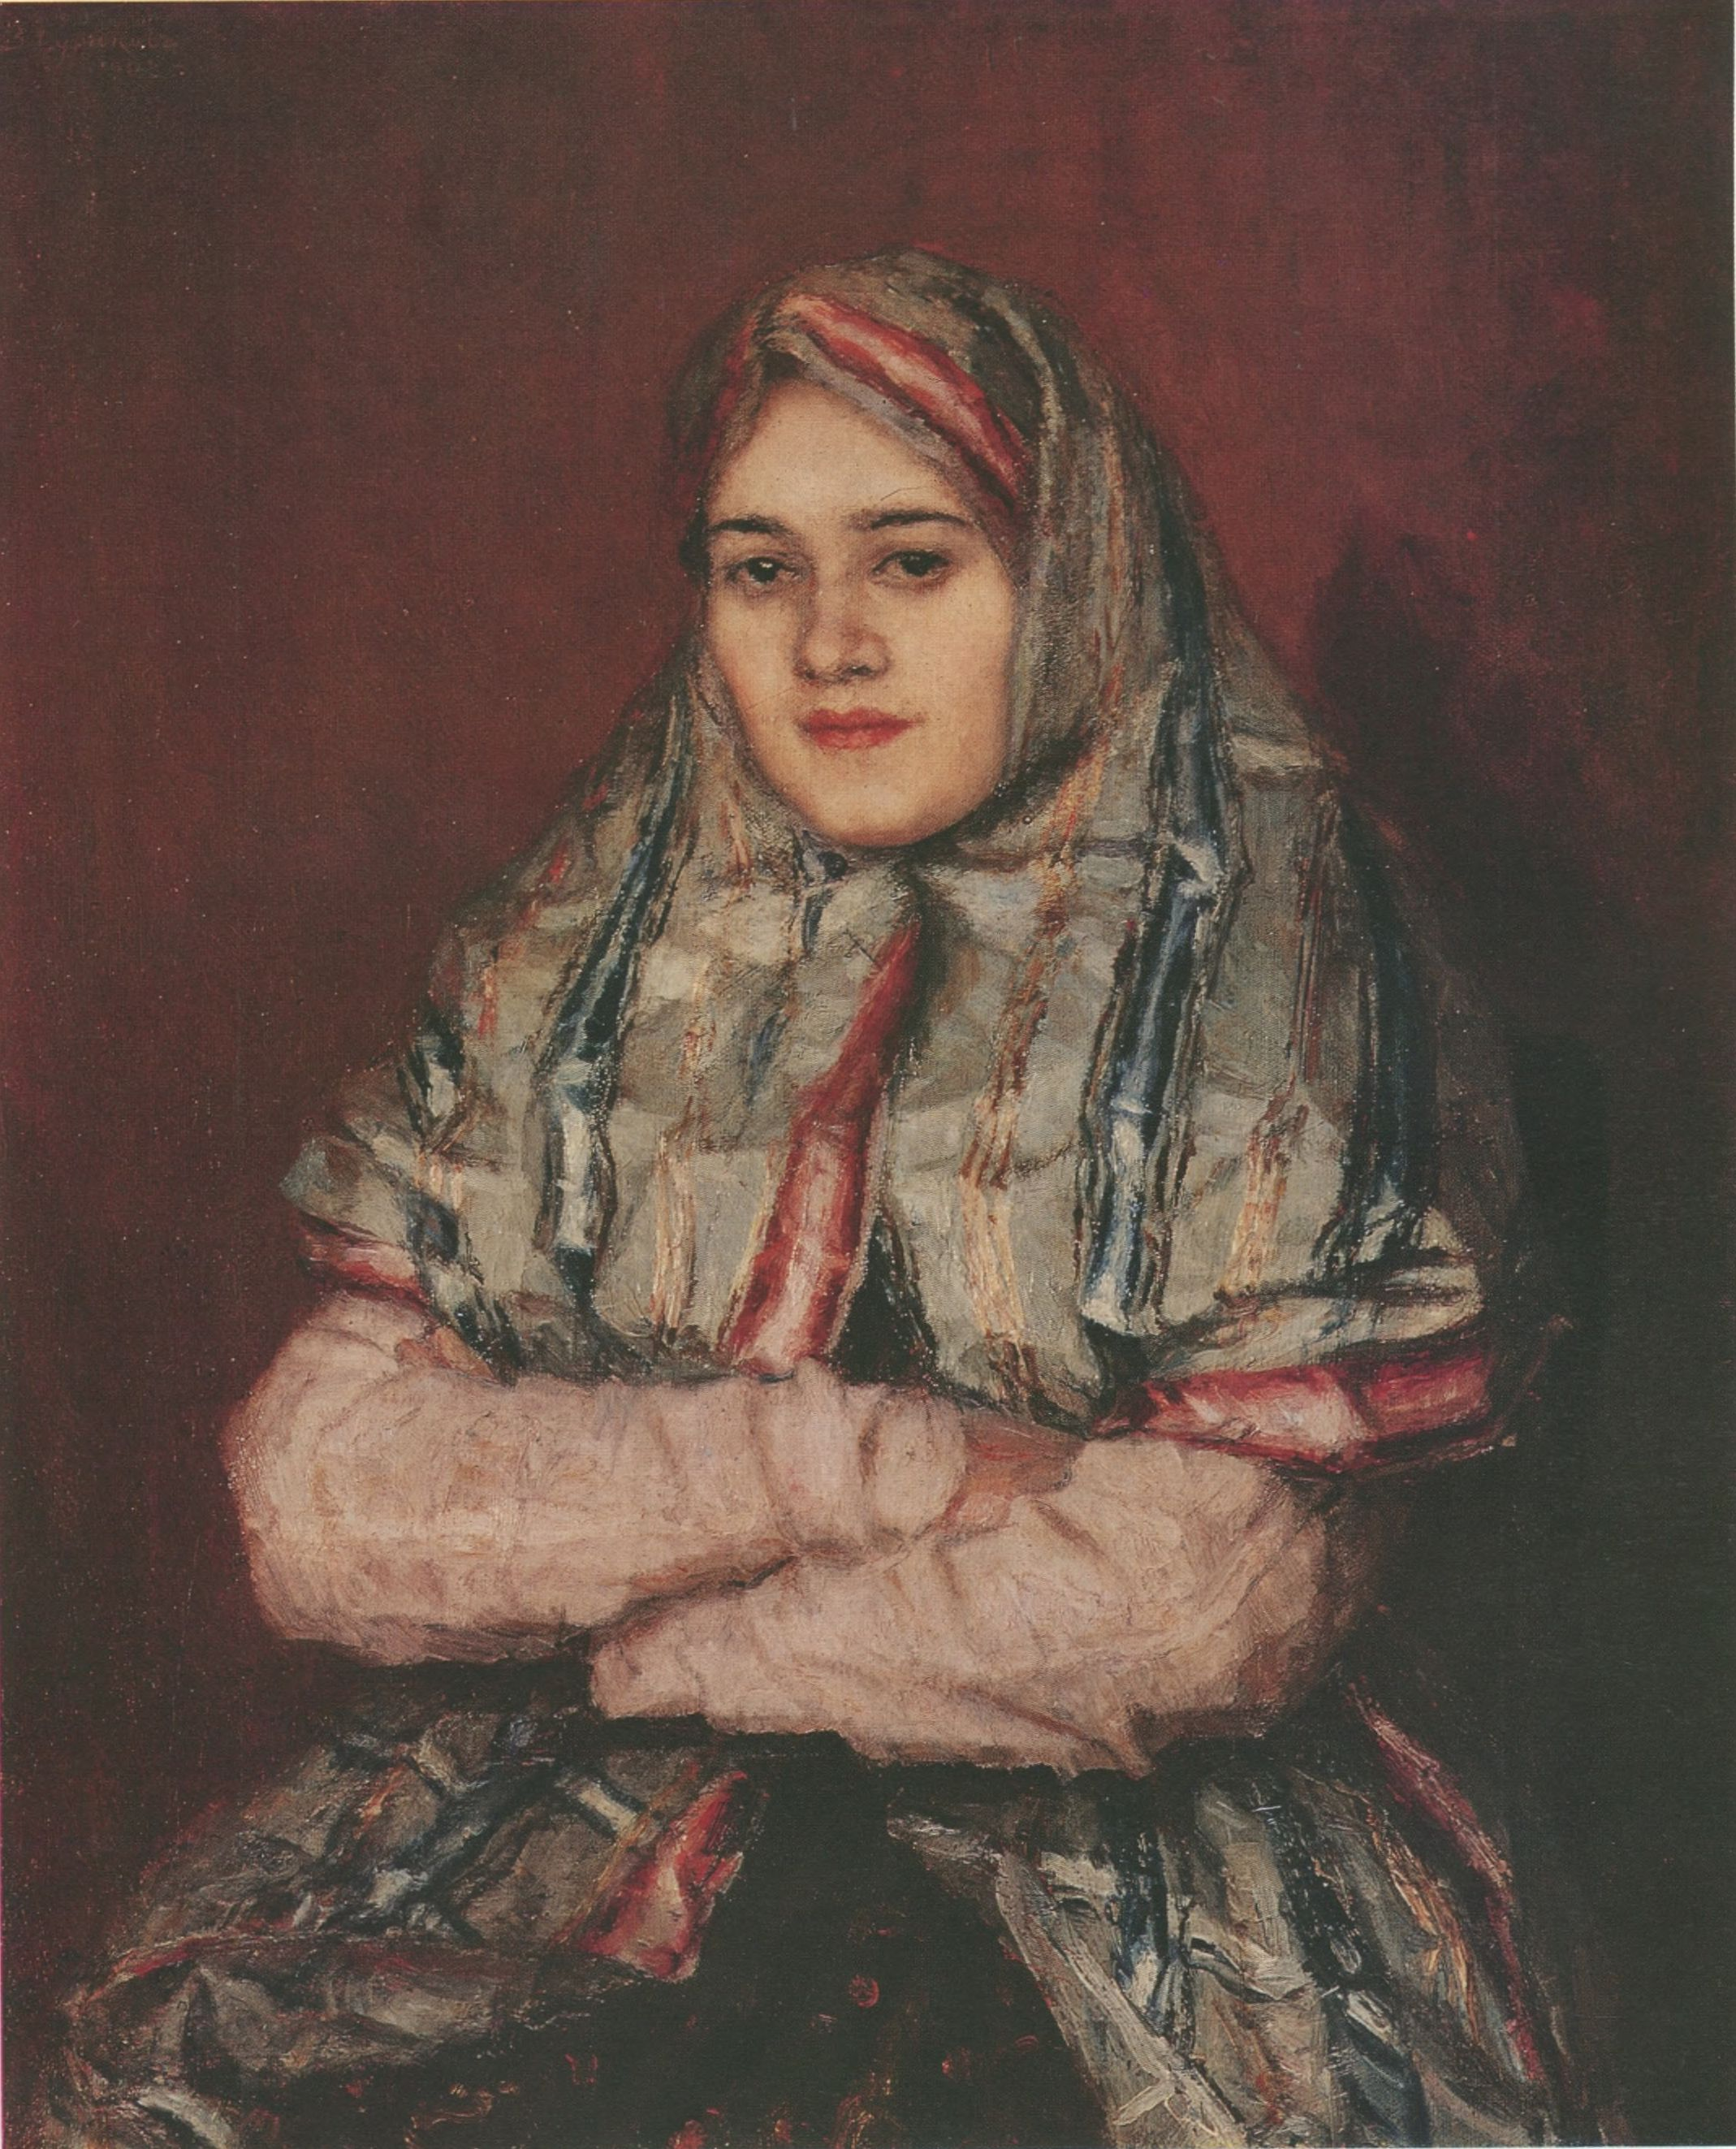 47. Горожанка (Портрет А.И. Емельяновой). 1902 (Town Woman (Portrait of Alexandra Yemelyanova). 1902)